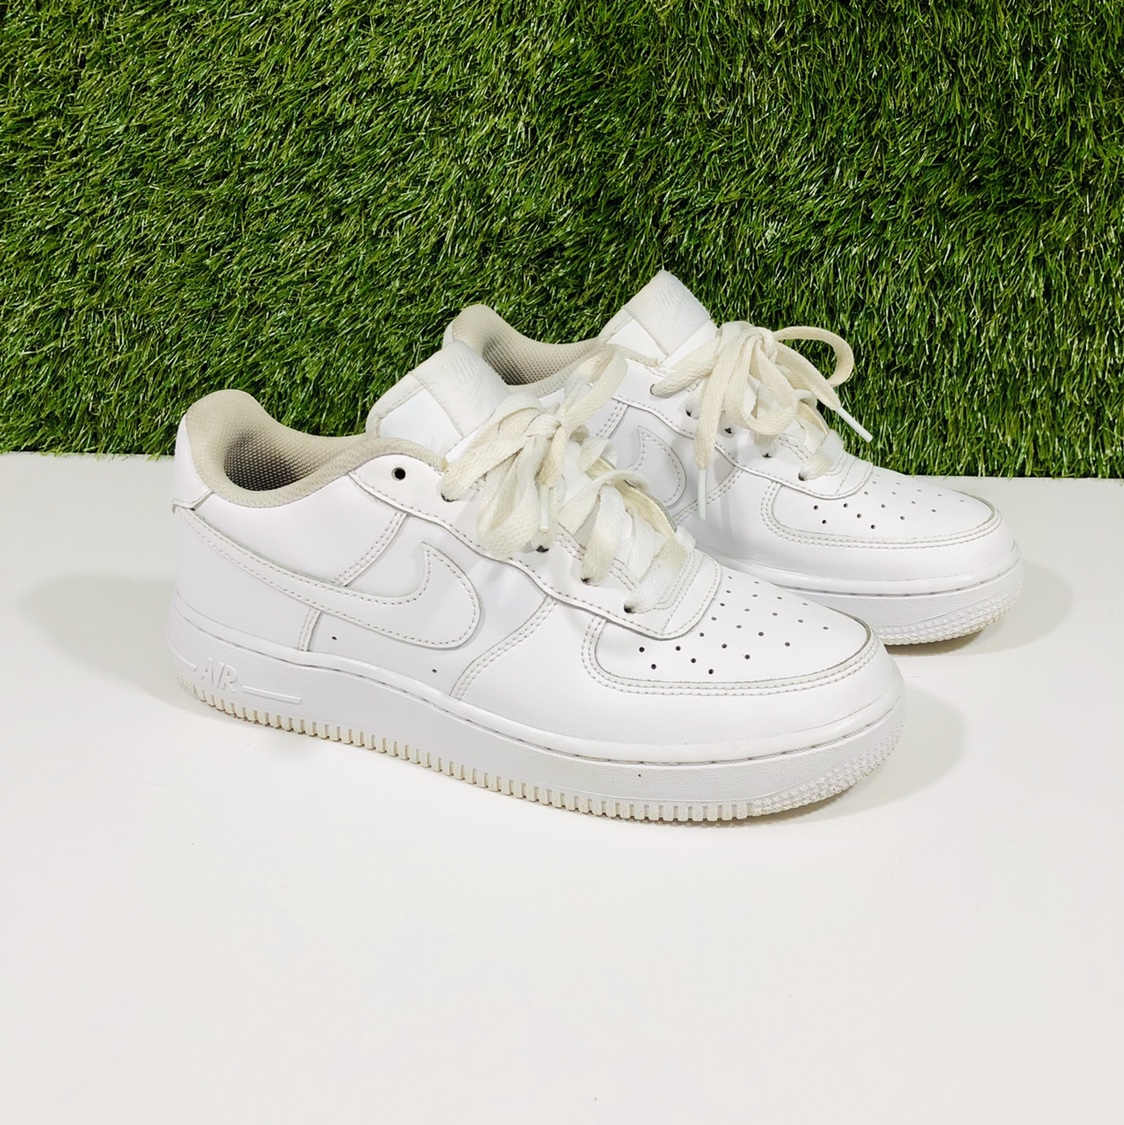 BRAND: NIKE AIR FORCE 1 SIZE: Youth